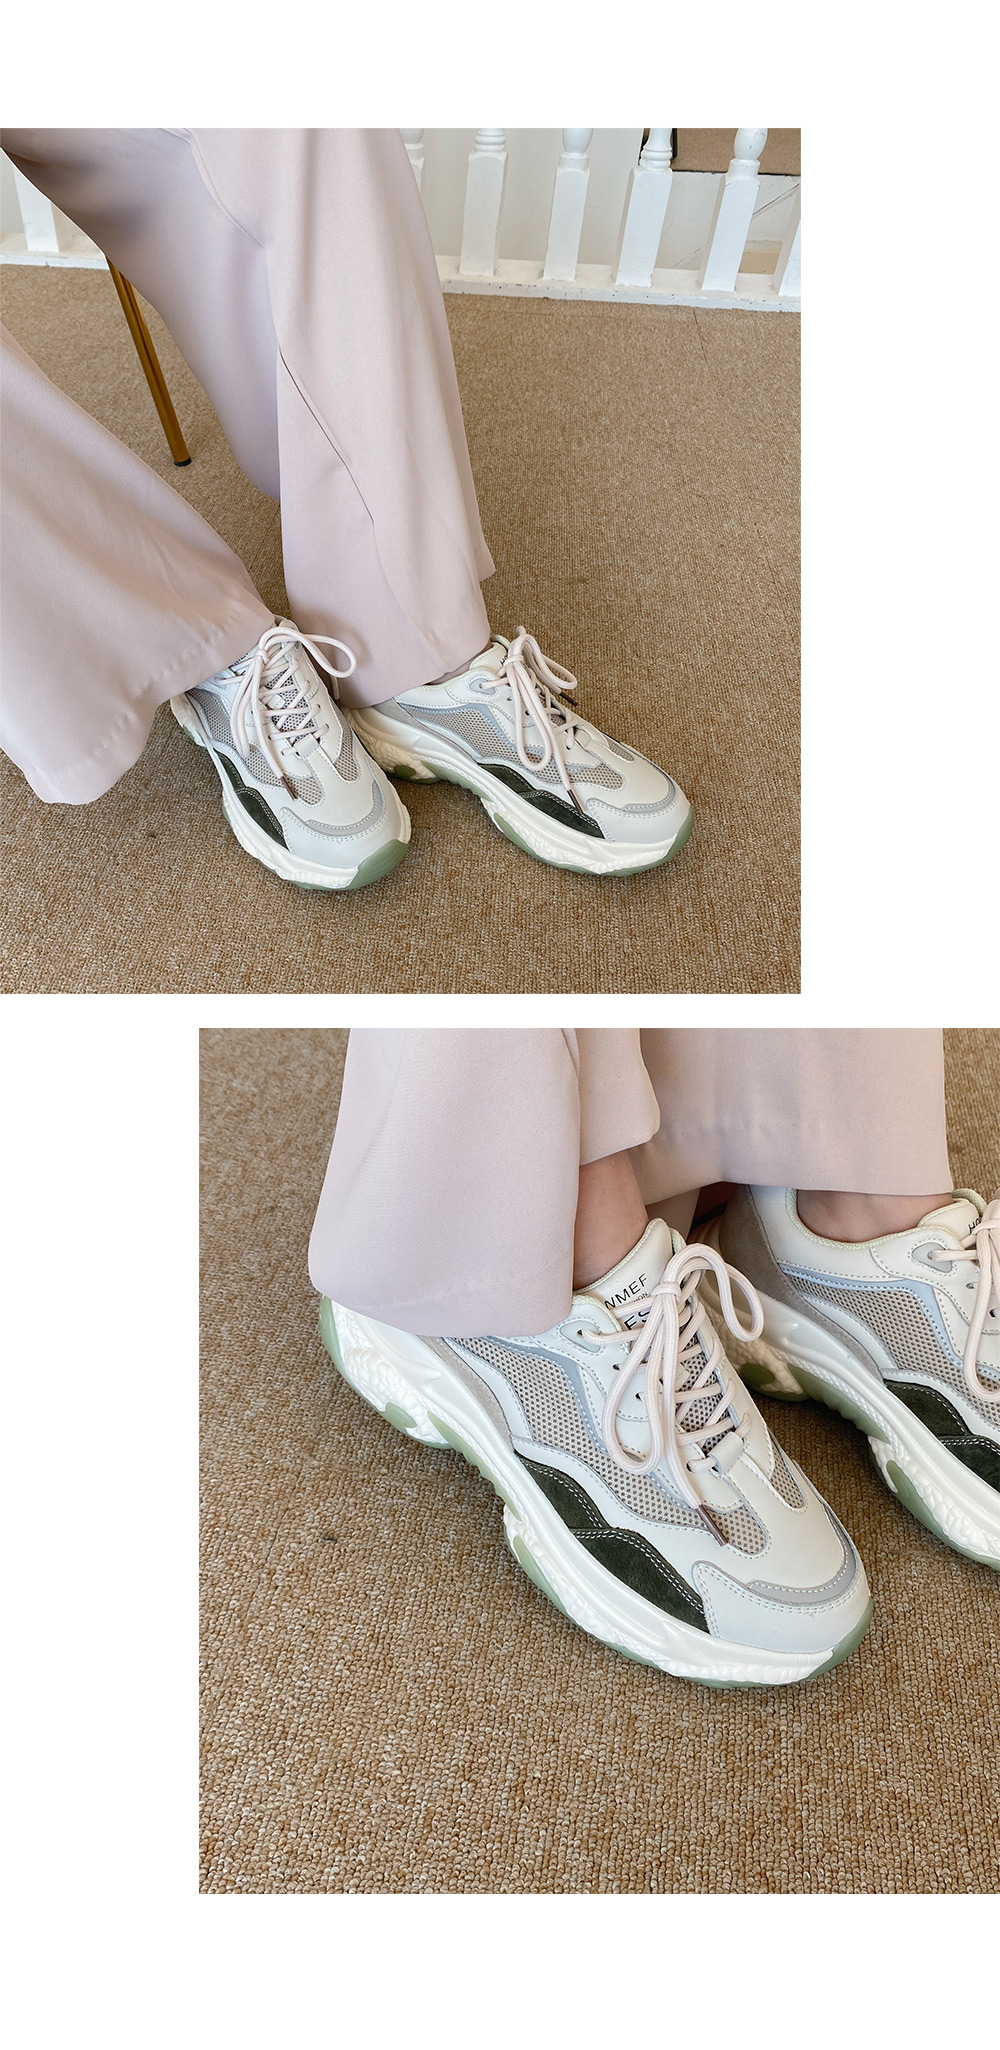 Combi Tall Ugly Shoes